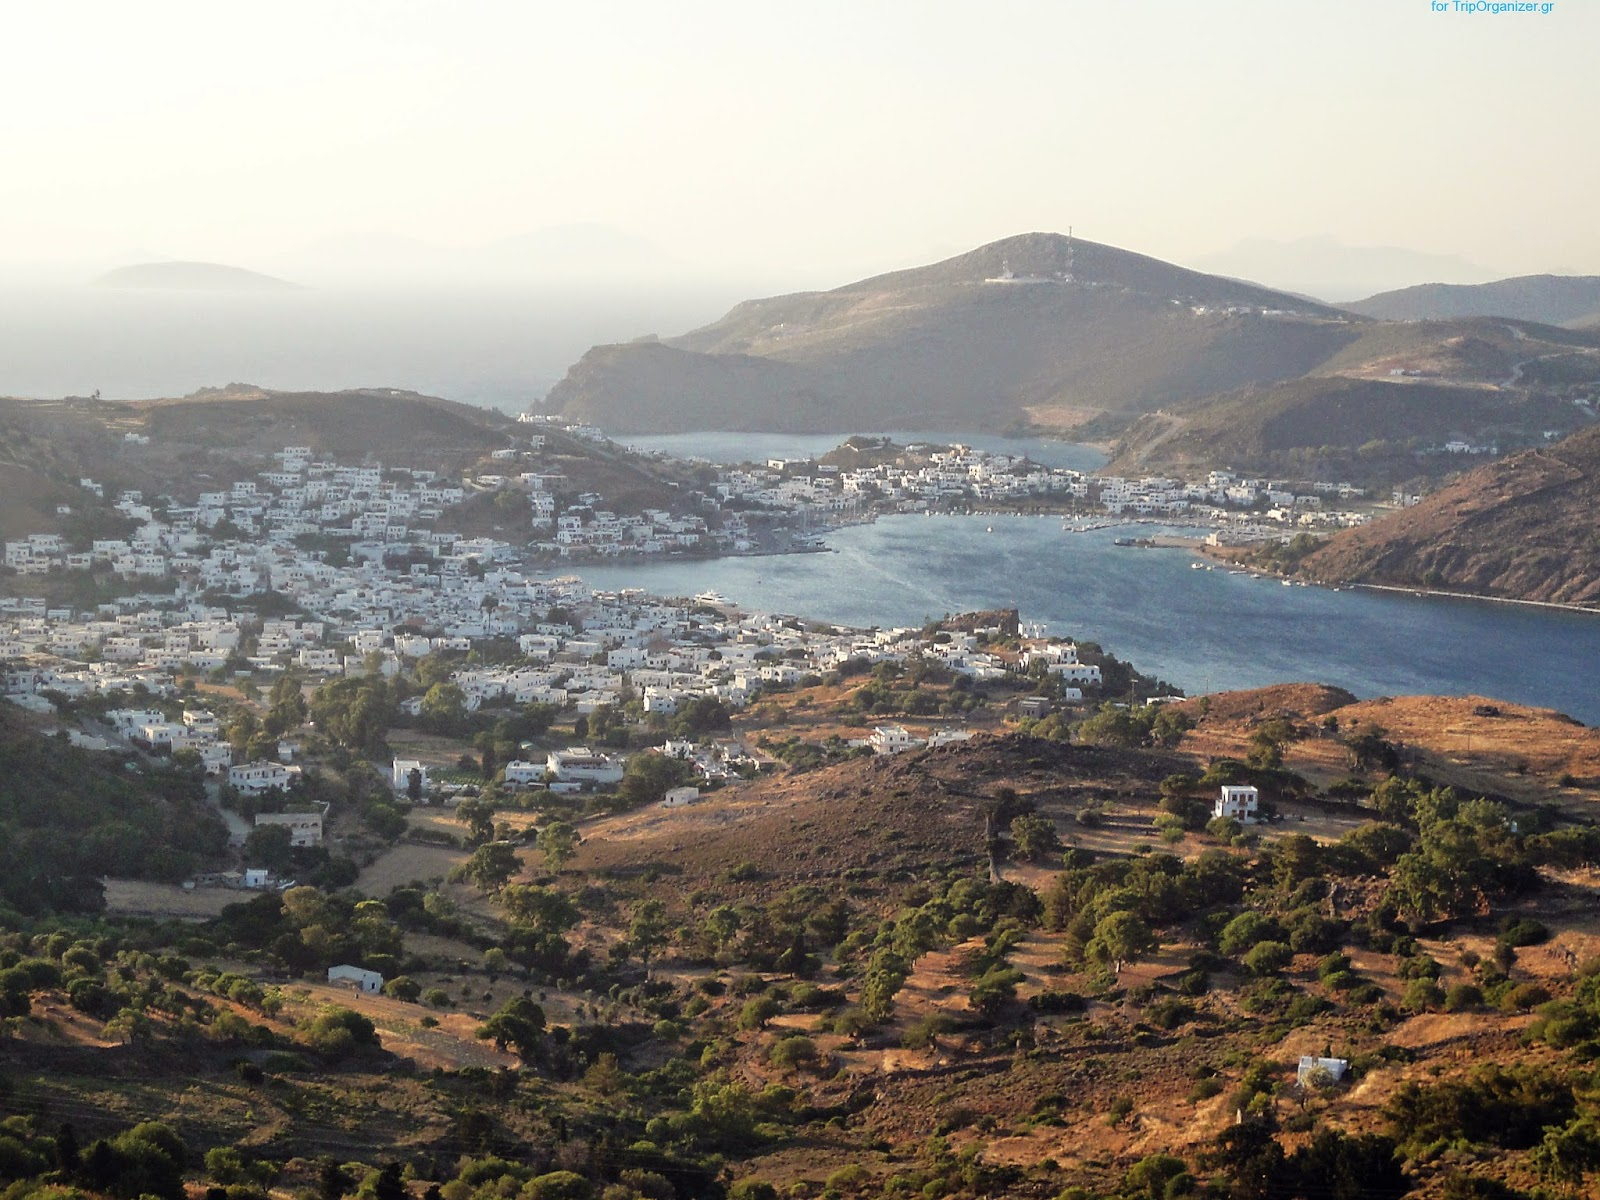 https://www.triporganizer.gr/destinations/patmos/